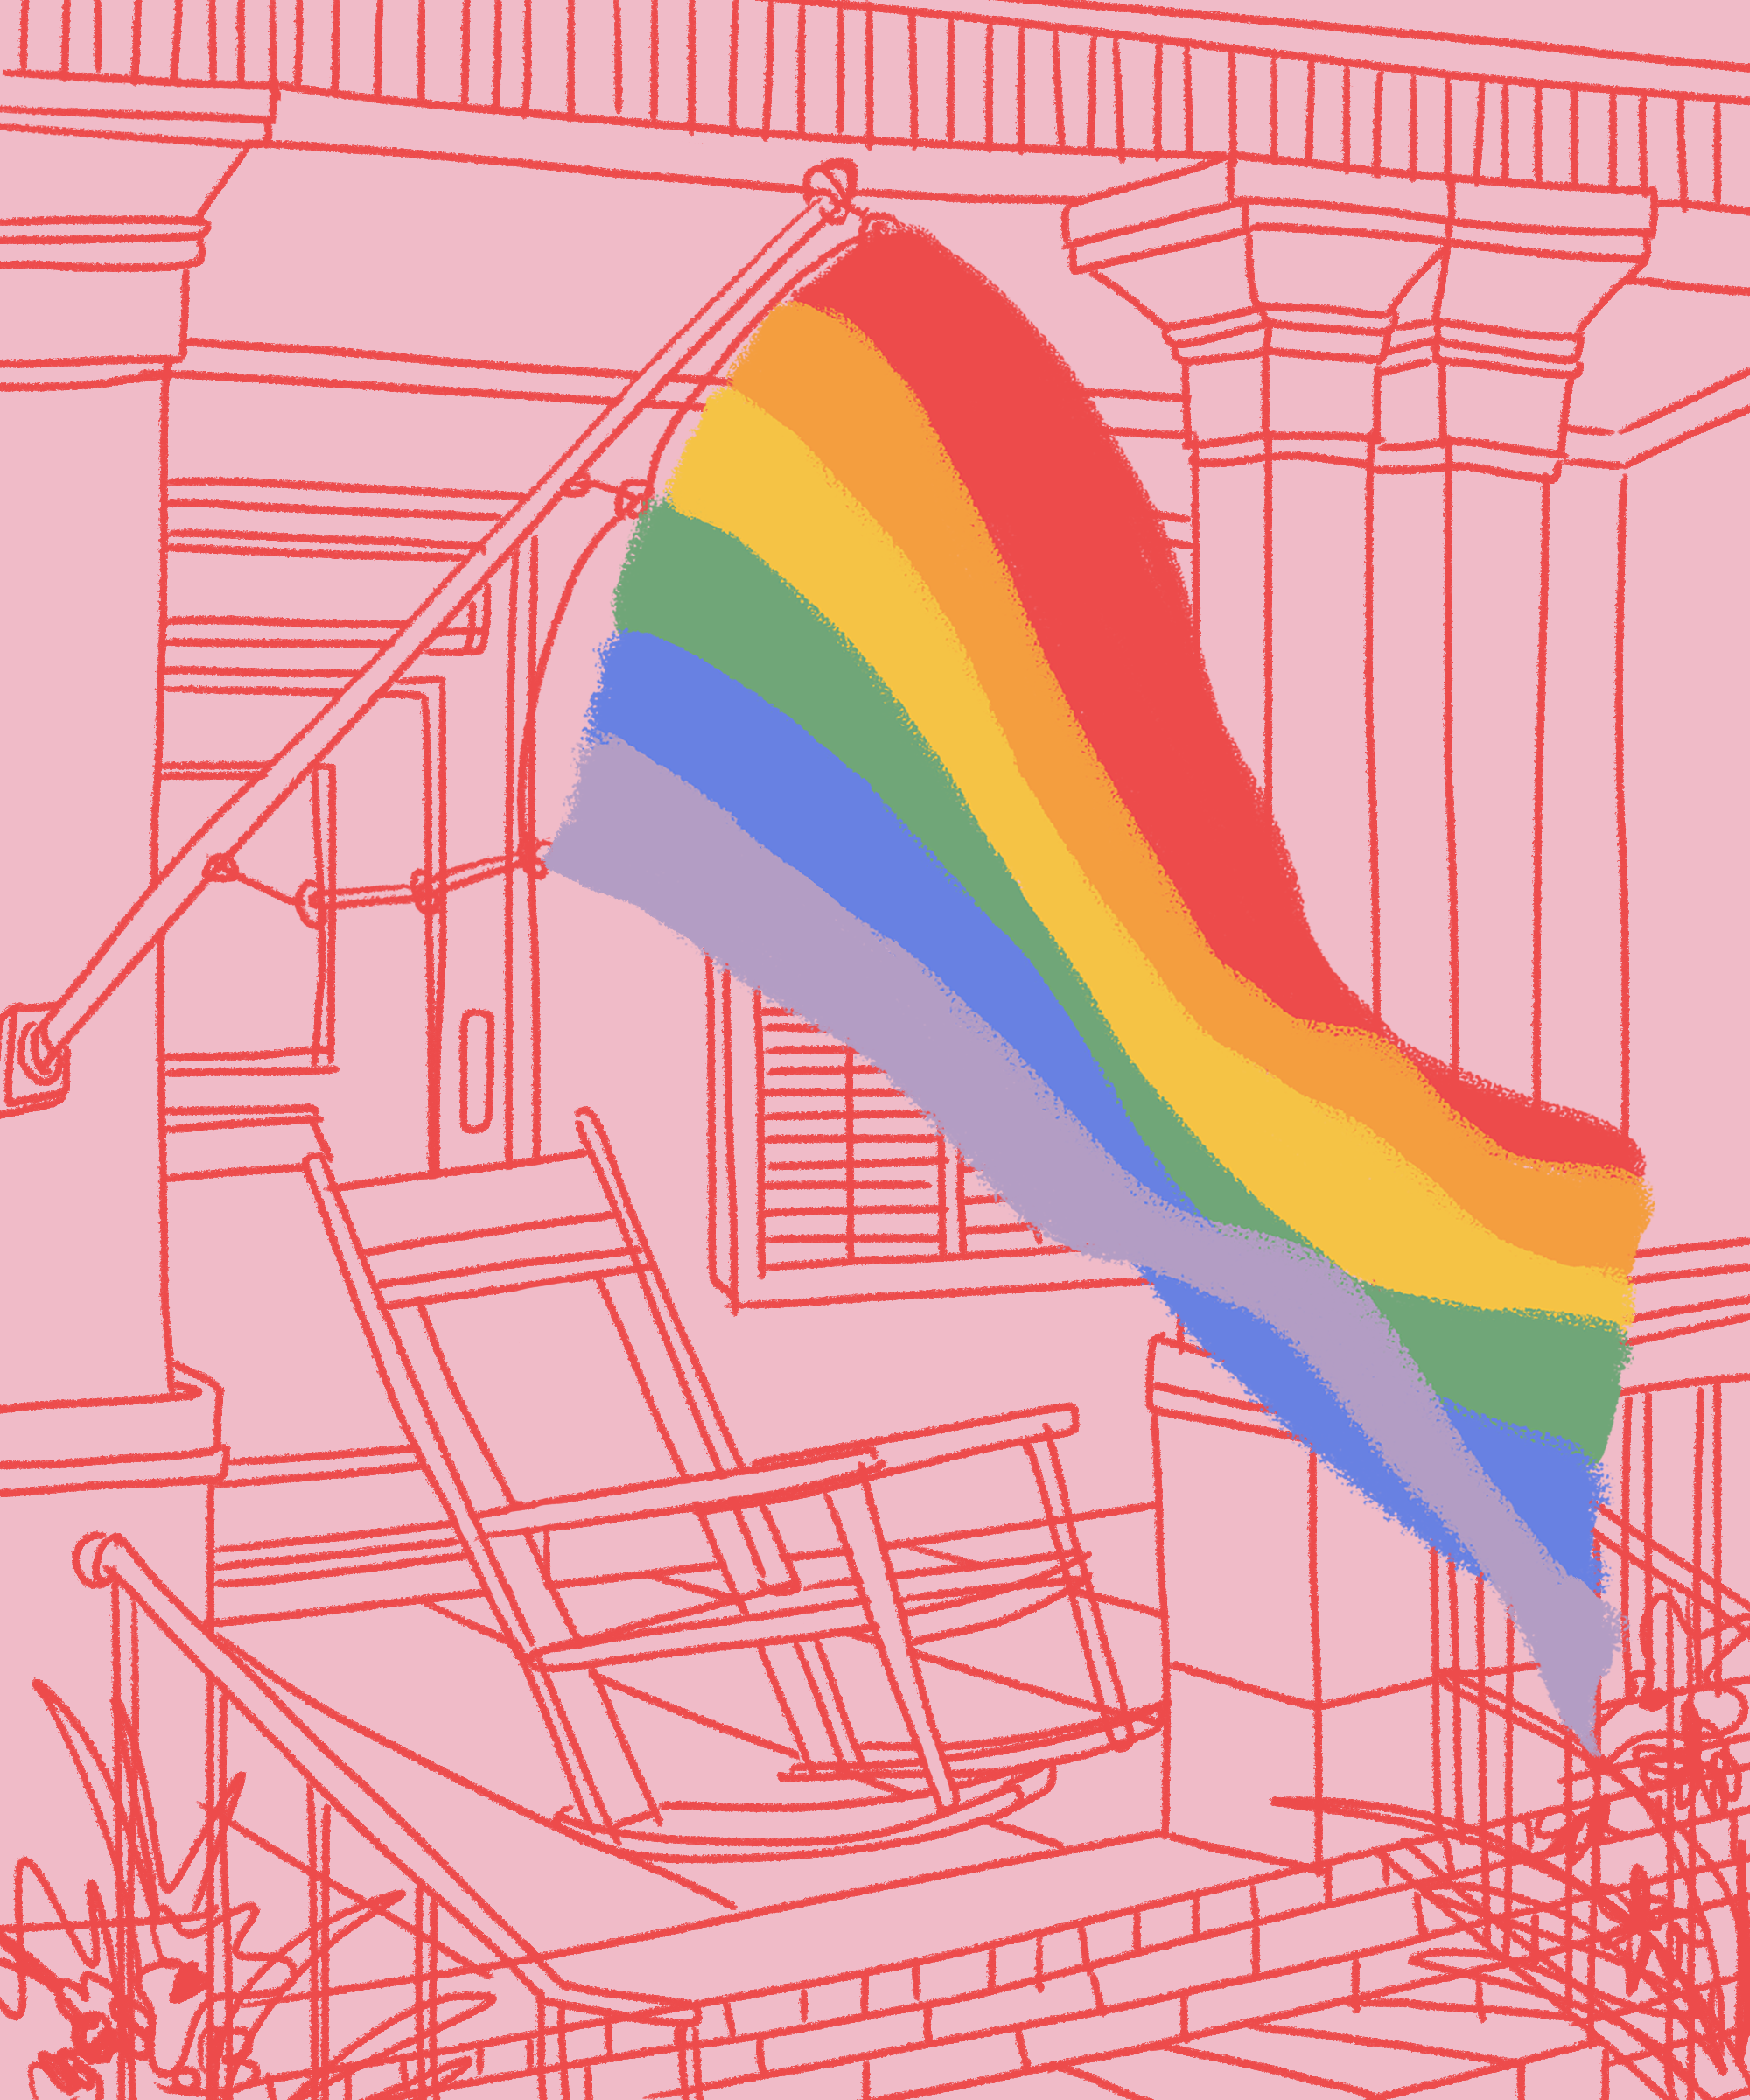 Guide To LGBTQ Flags: Meanings & Terms Of Pride Rainbow